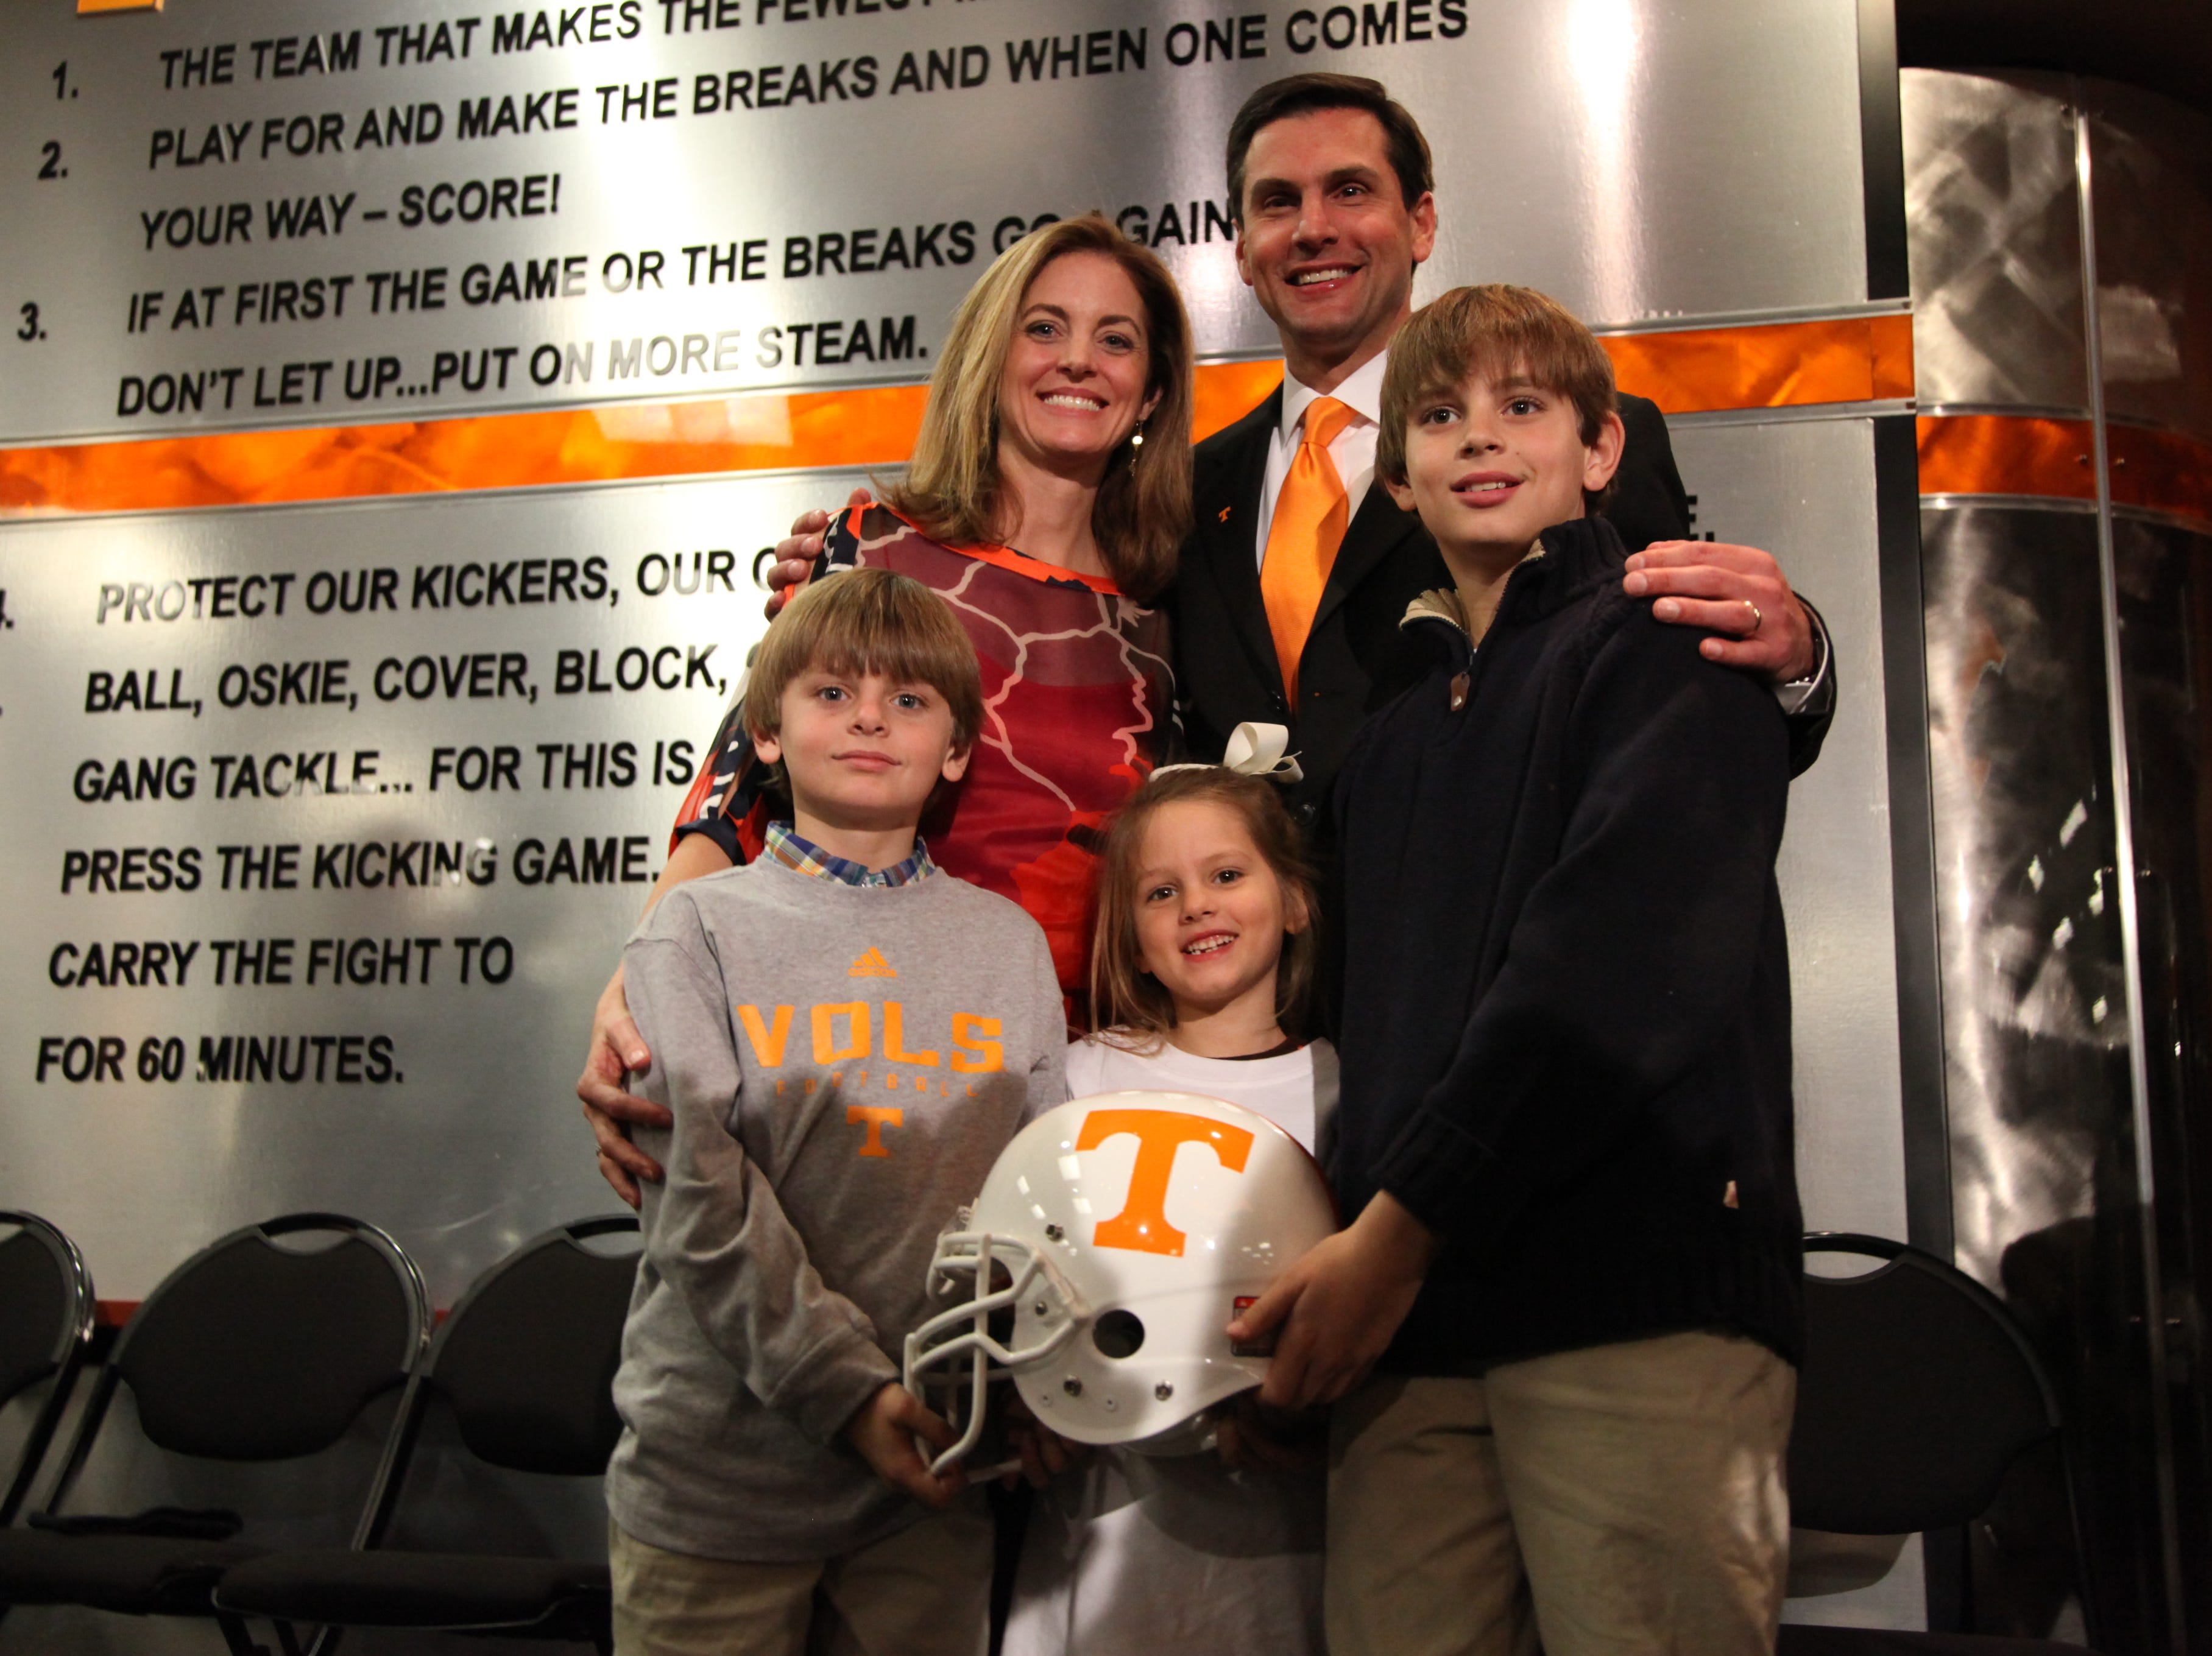 Tennessee head coach Derek Dooley poses with his wife Dr. Allison Jeffers Dooley and children, from left, Peyton, Juliana and John Taylor  press conference in the Peyton Manning Locker Room Complex at Neyland Stadium Friday, Jan. 15, 2010.